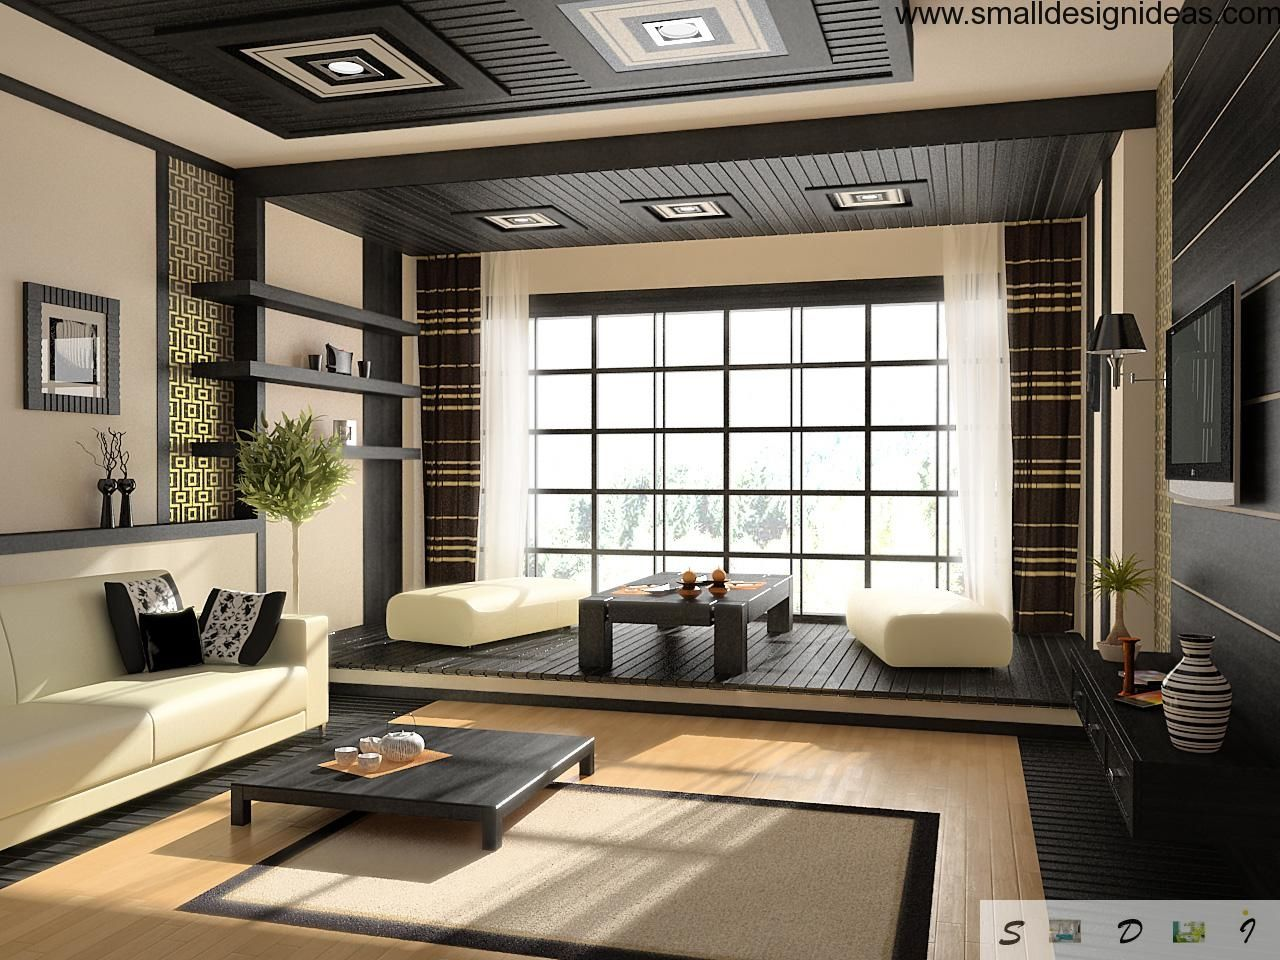 Amazing Interior Design Custom 10 Things To Know Before Remodeling Your Interior Into Japanese Design Decoration